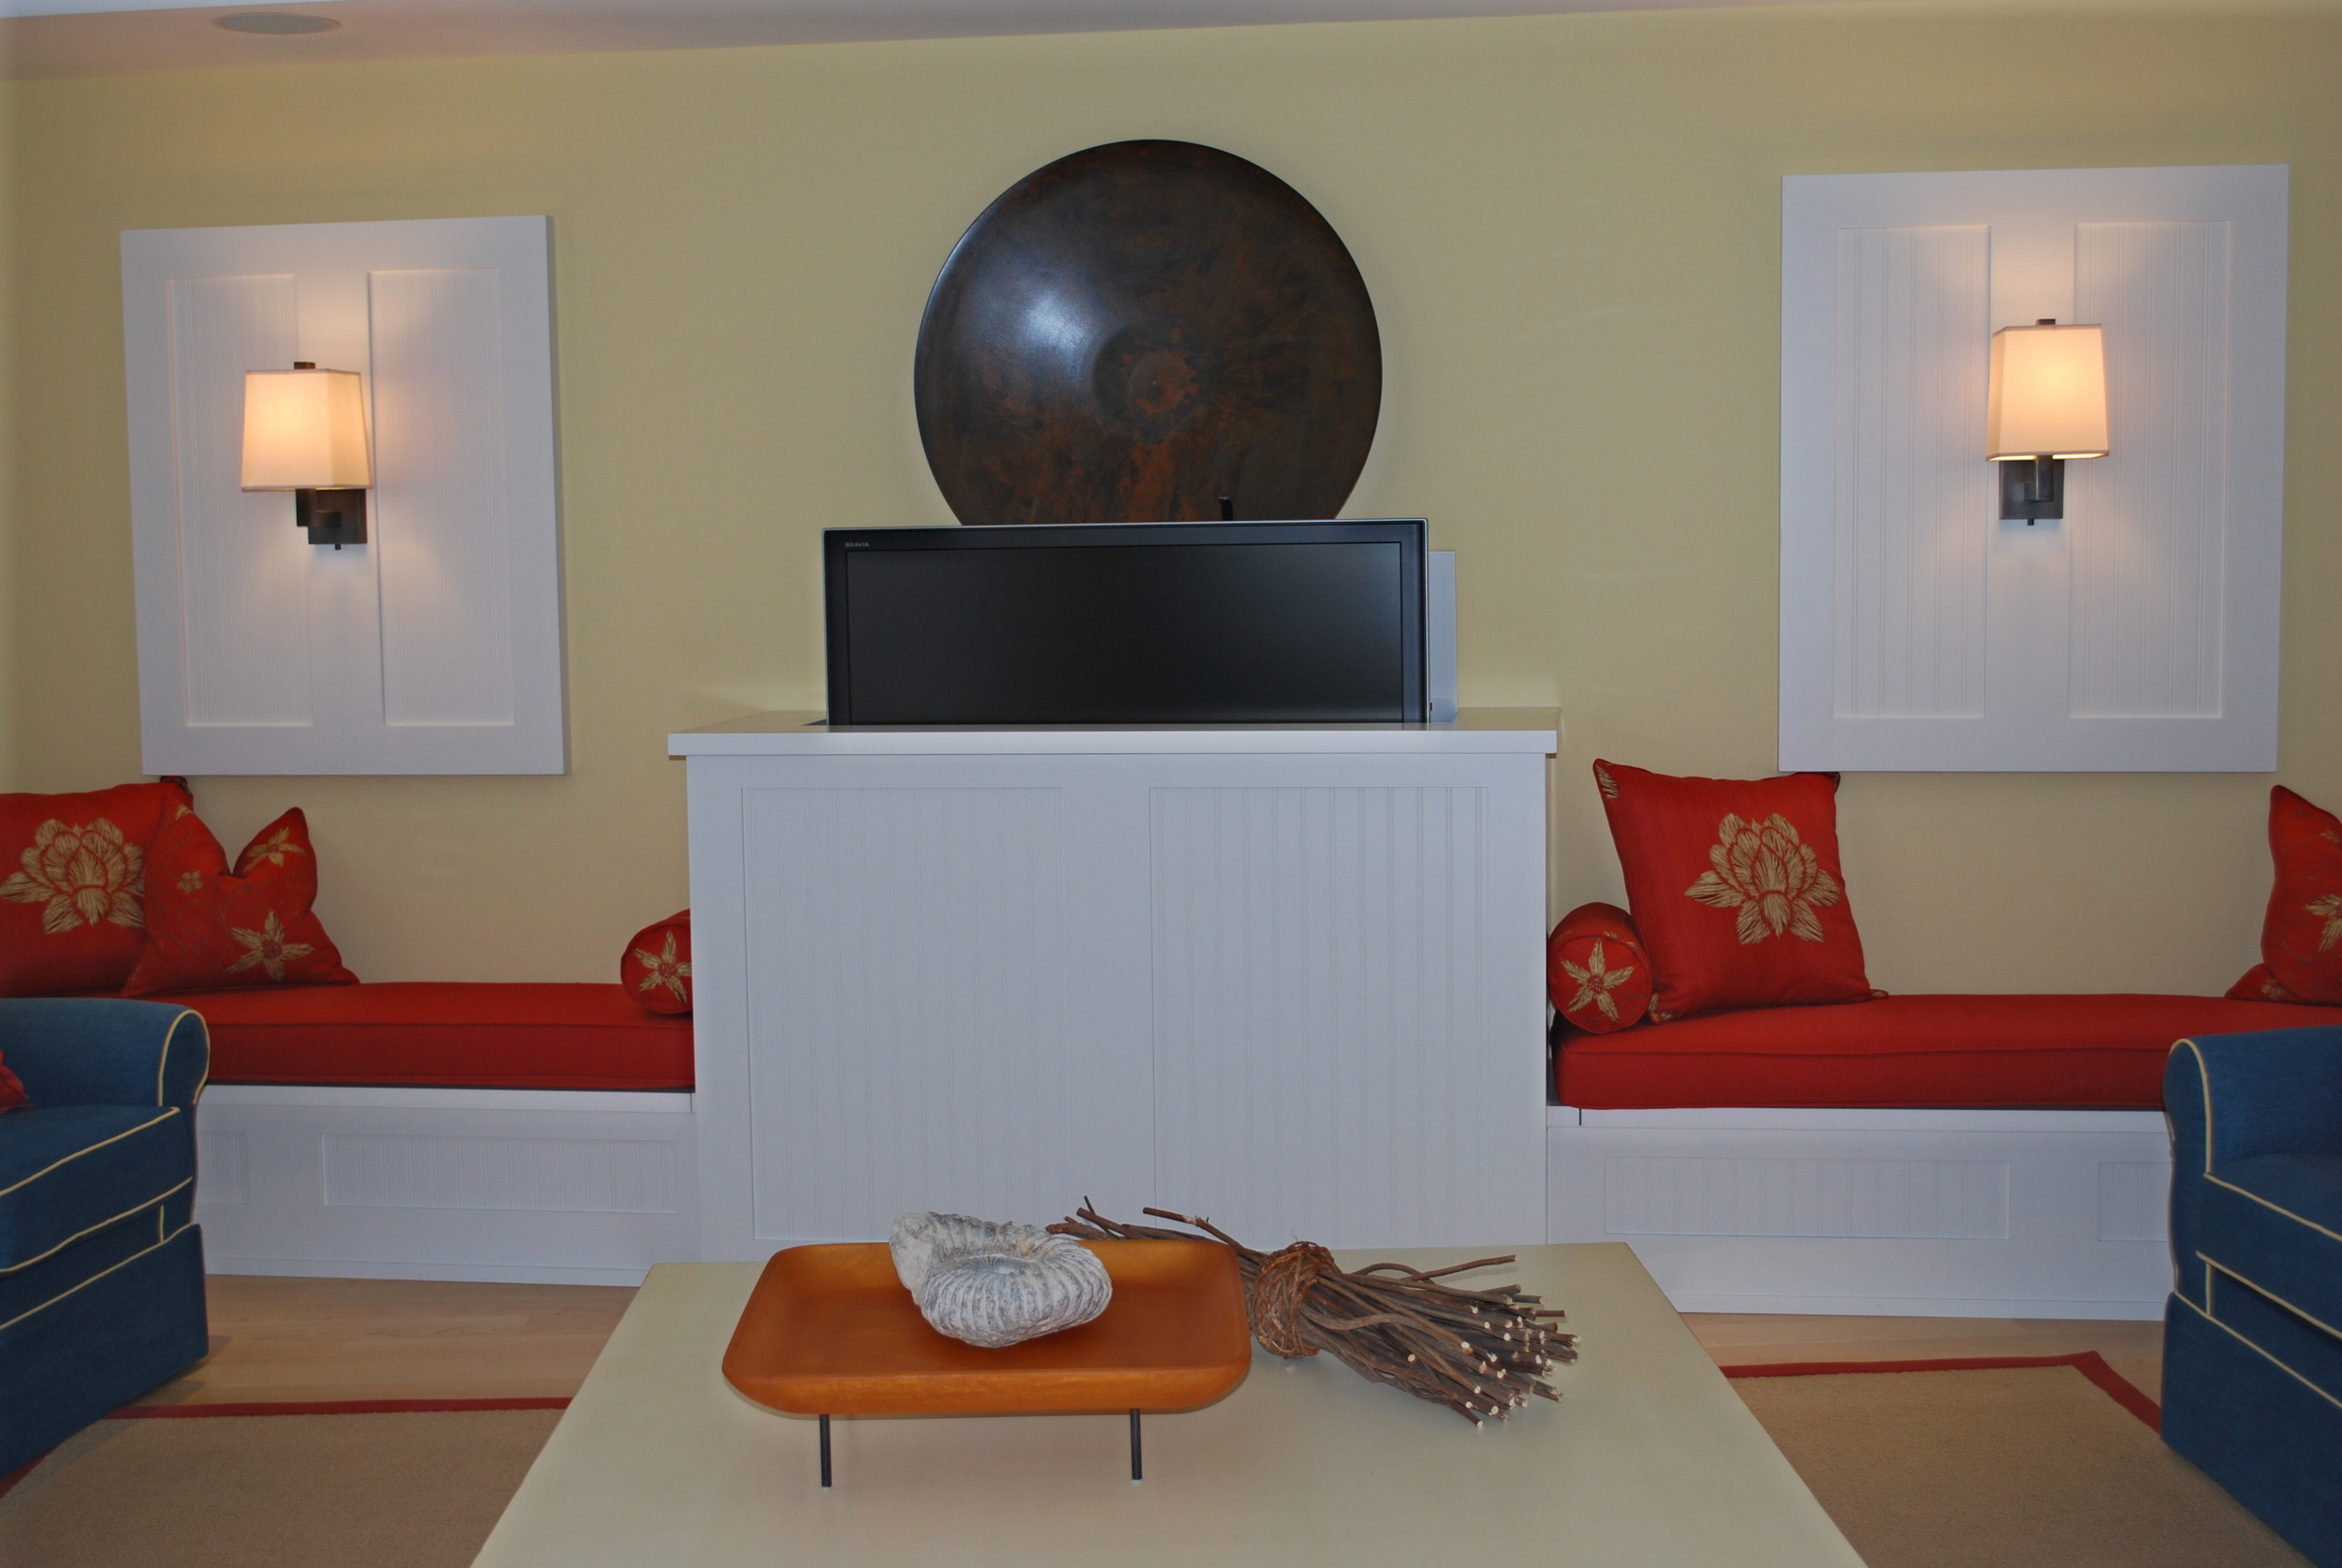 living-room-benches-with-hidden-tv-lift-cabinet.JPG